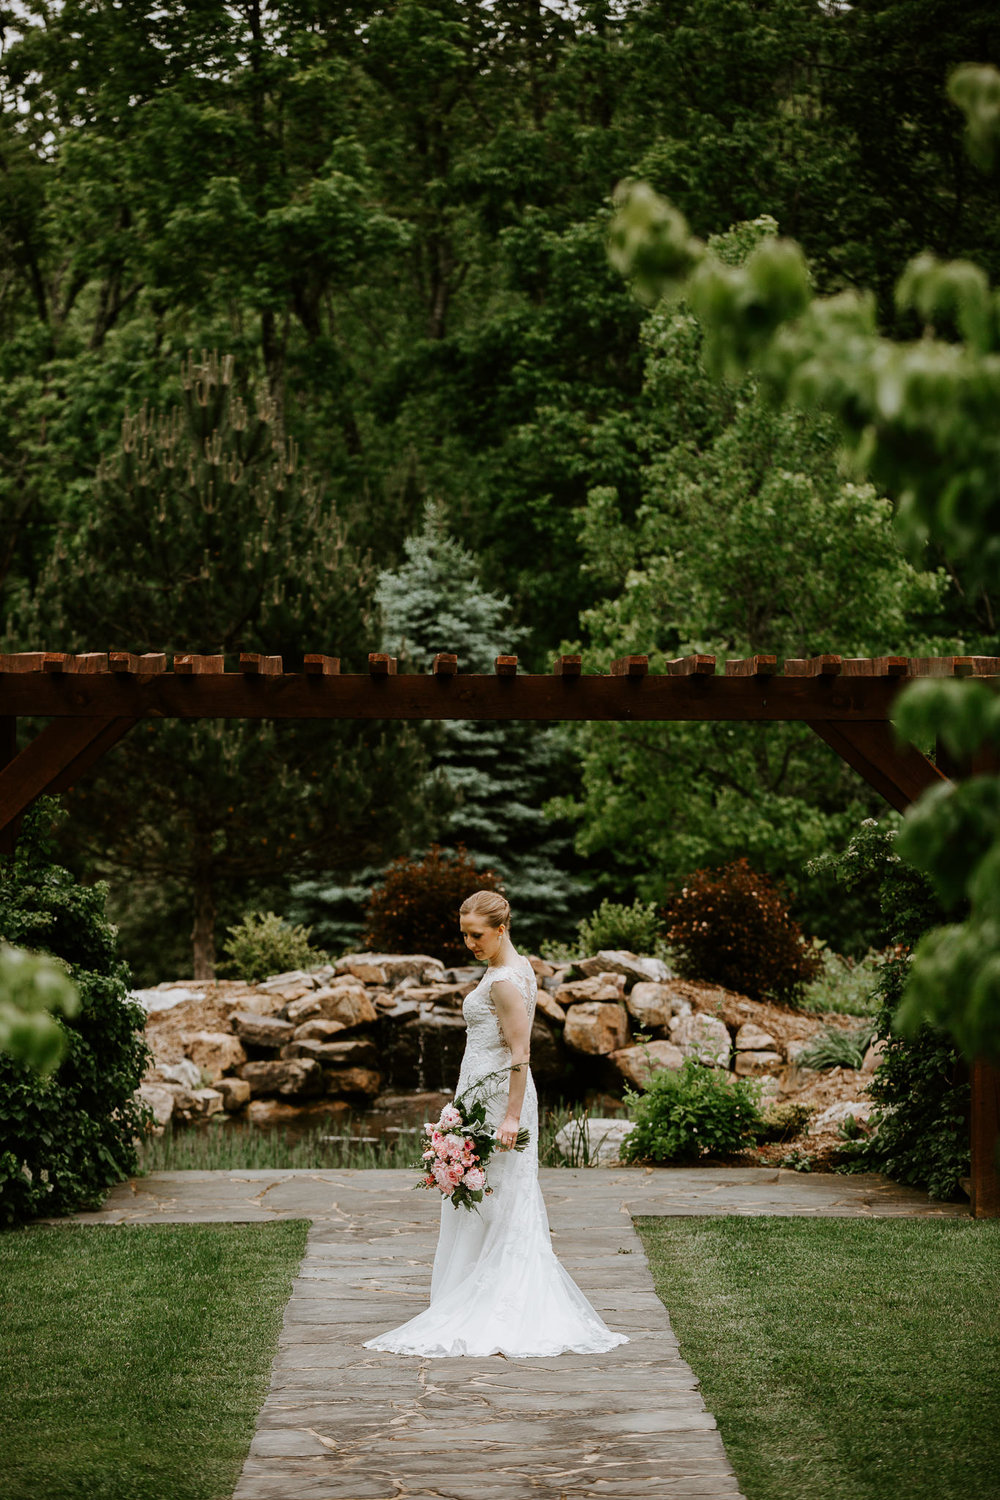 House Mountain Inn - Weddings - Lexington - Virginia - Best Wedding Photographer - Pat Cori Photography-44.jpg